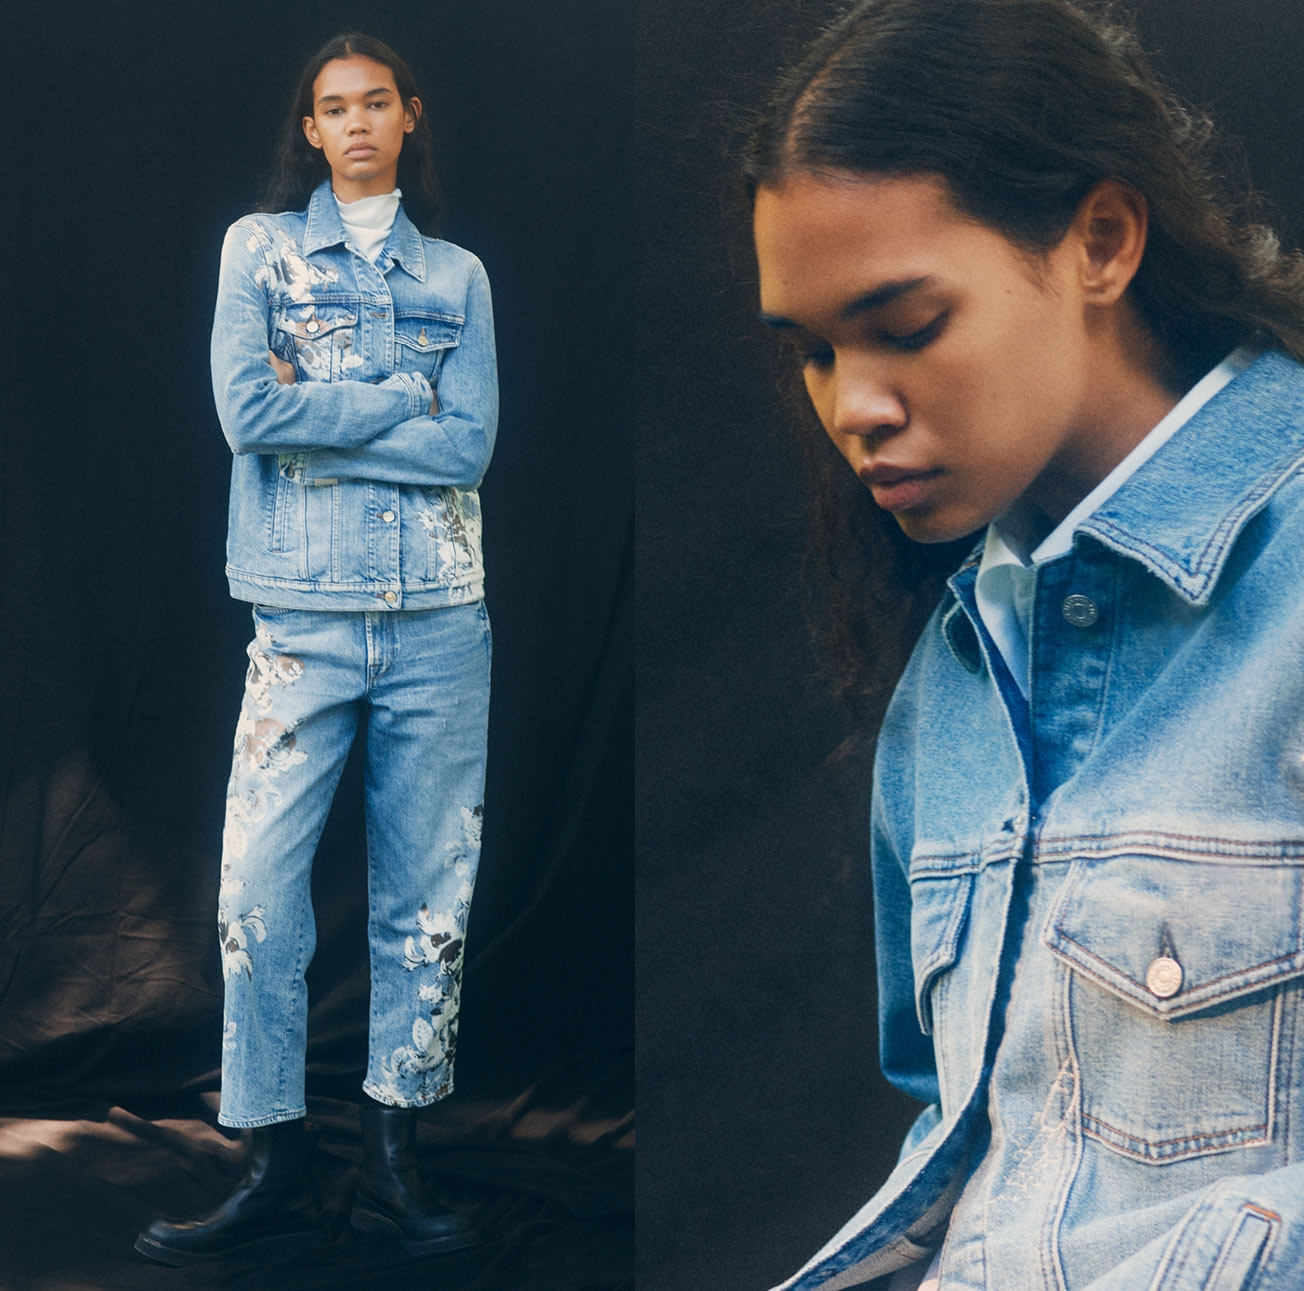 7 For All Mankind - Fall Winter 21